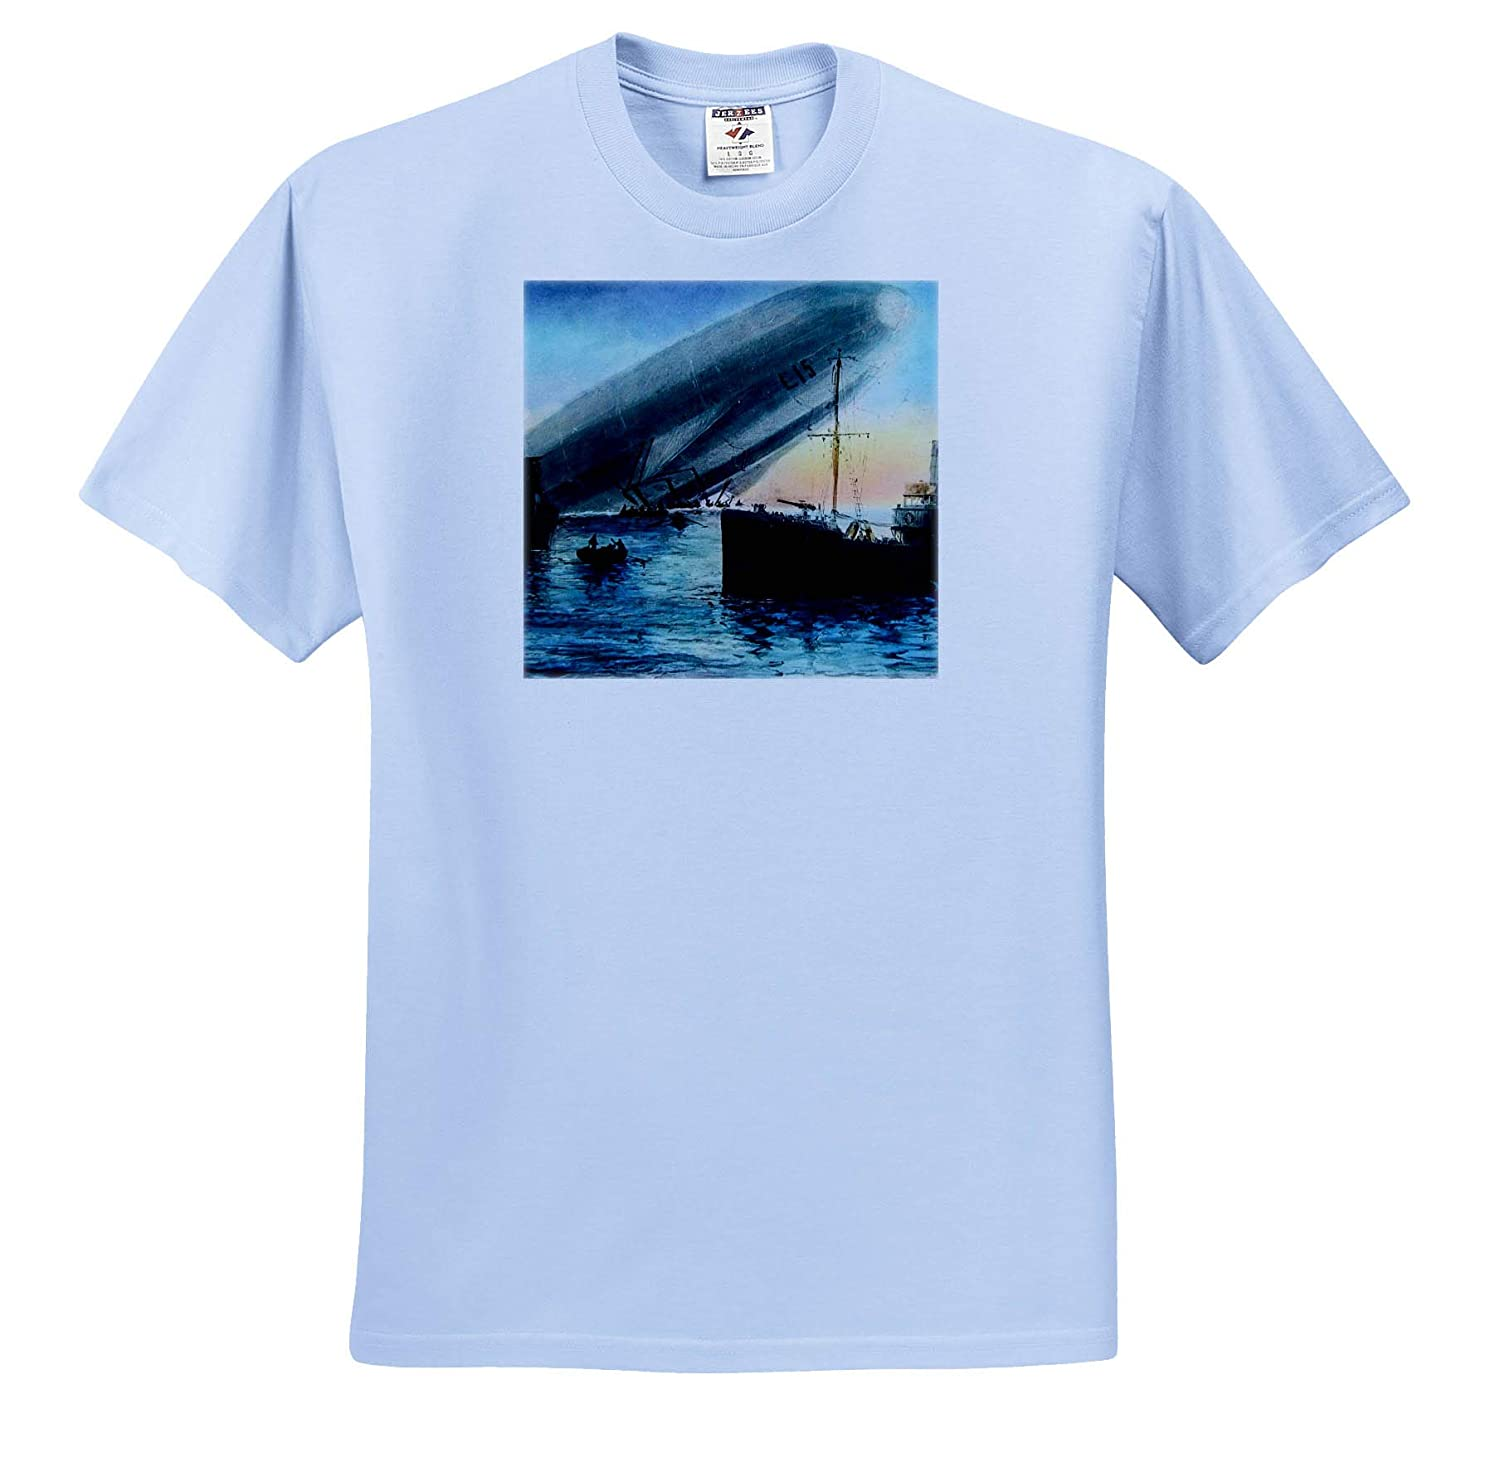 T-Shirts Zeppelin L15 Crashed in The Thames World War One Vintage Magic Lantern 3dRose Scenes from The Past